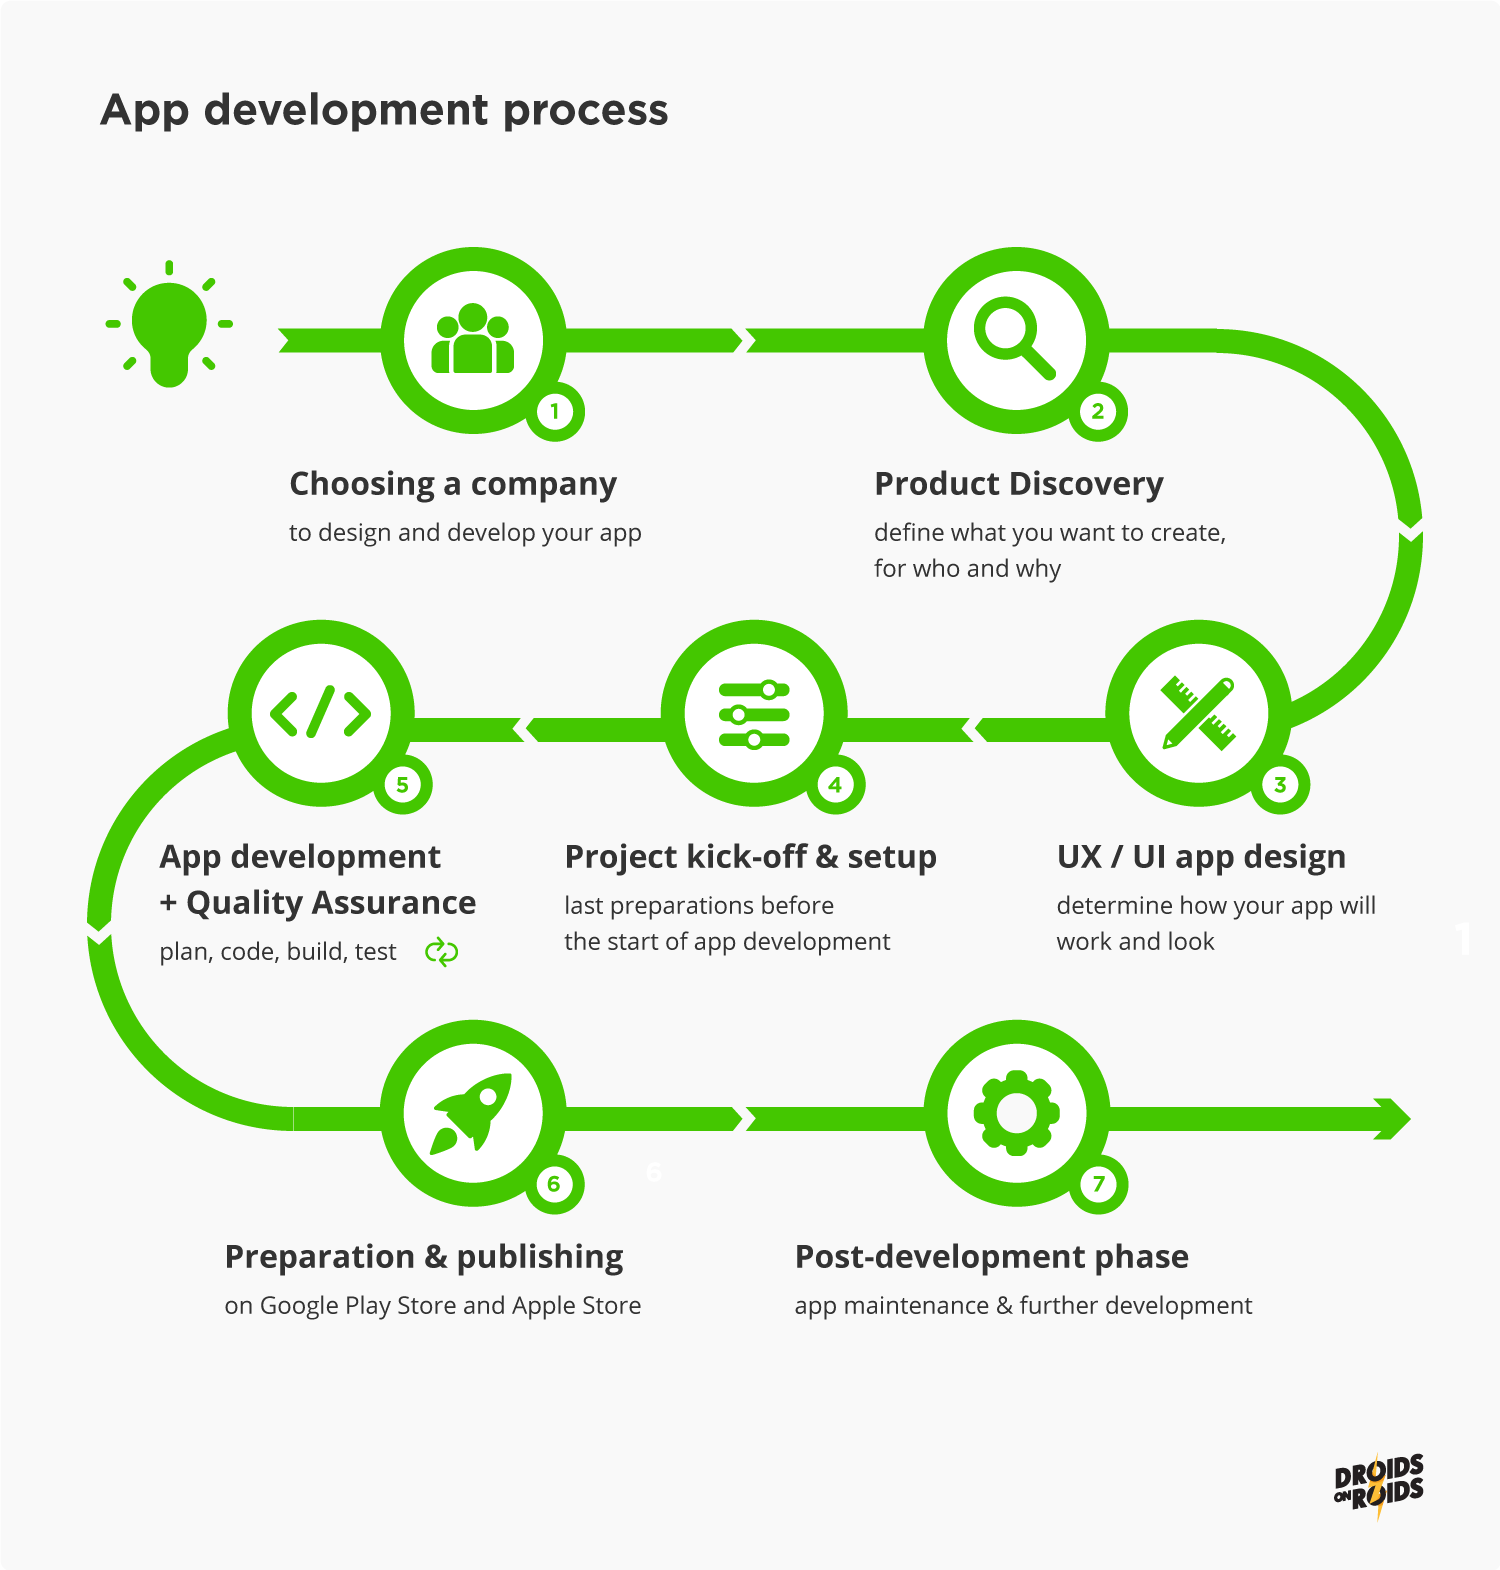 Mobile App Development Process – 7 Stages of App Development